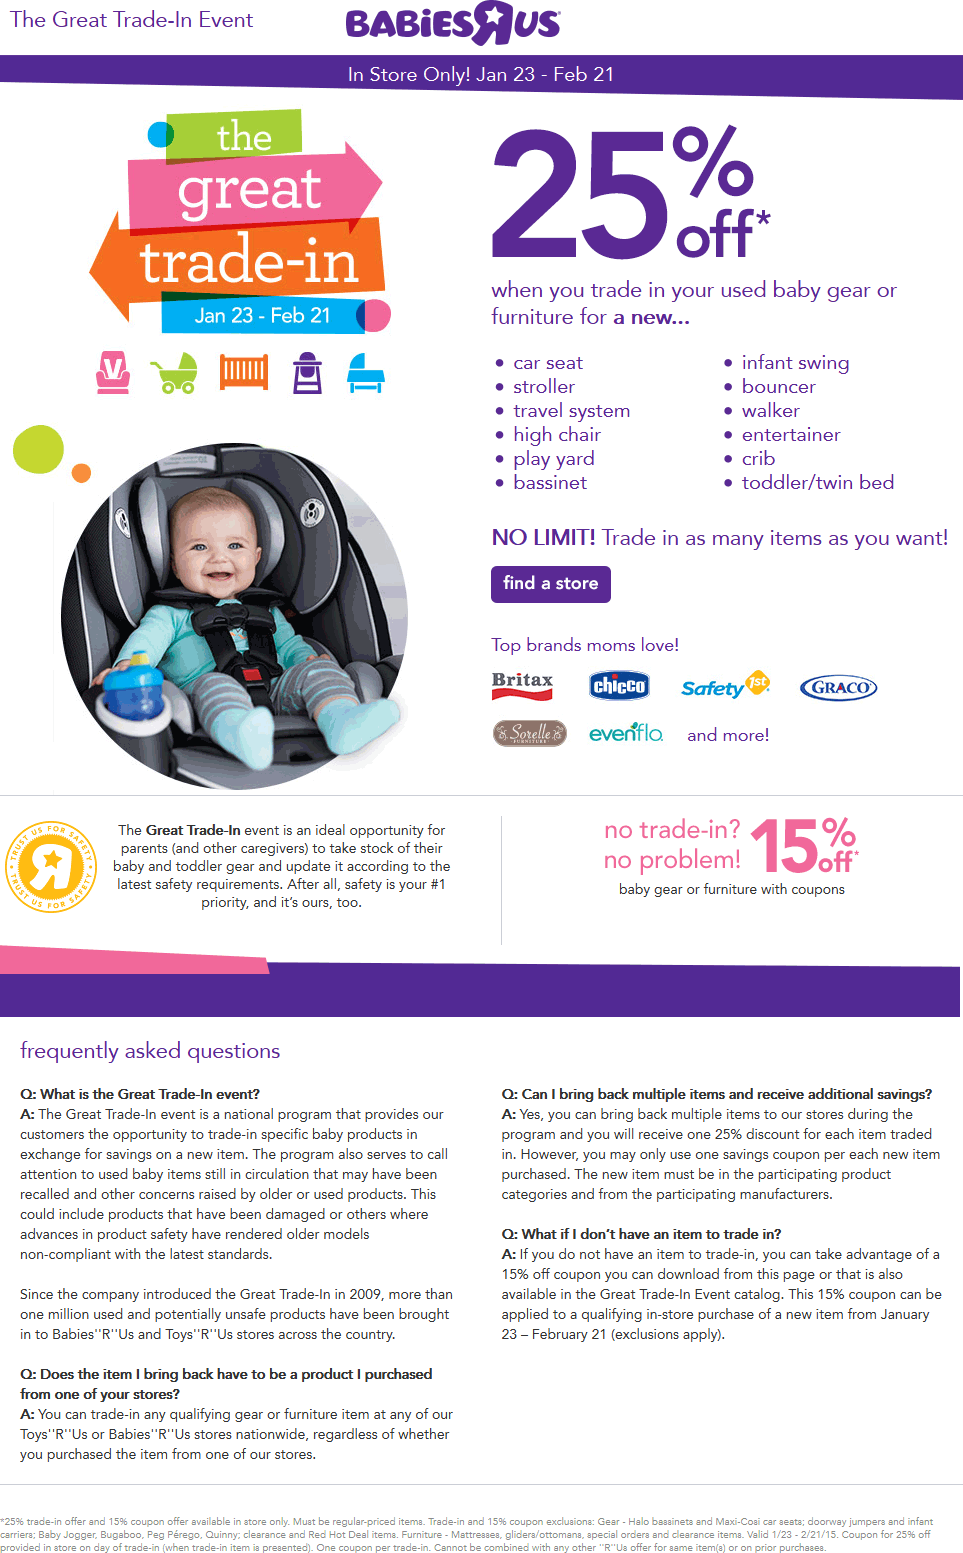 Babies R Us Coupon January 2018 Upgrade for 25% off baby gear with your trade-in at Babies R Us